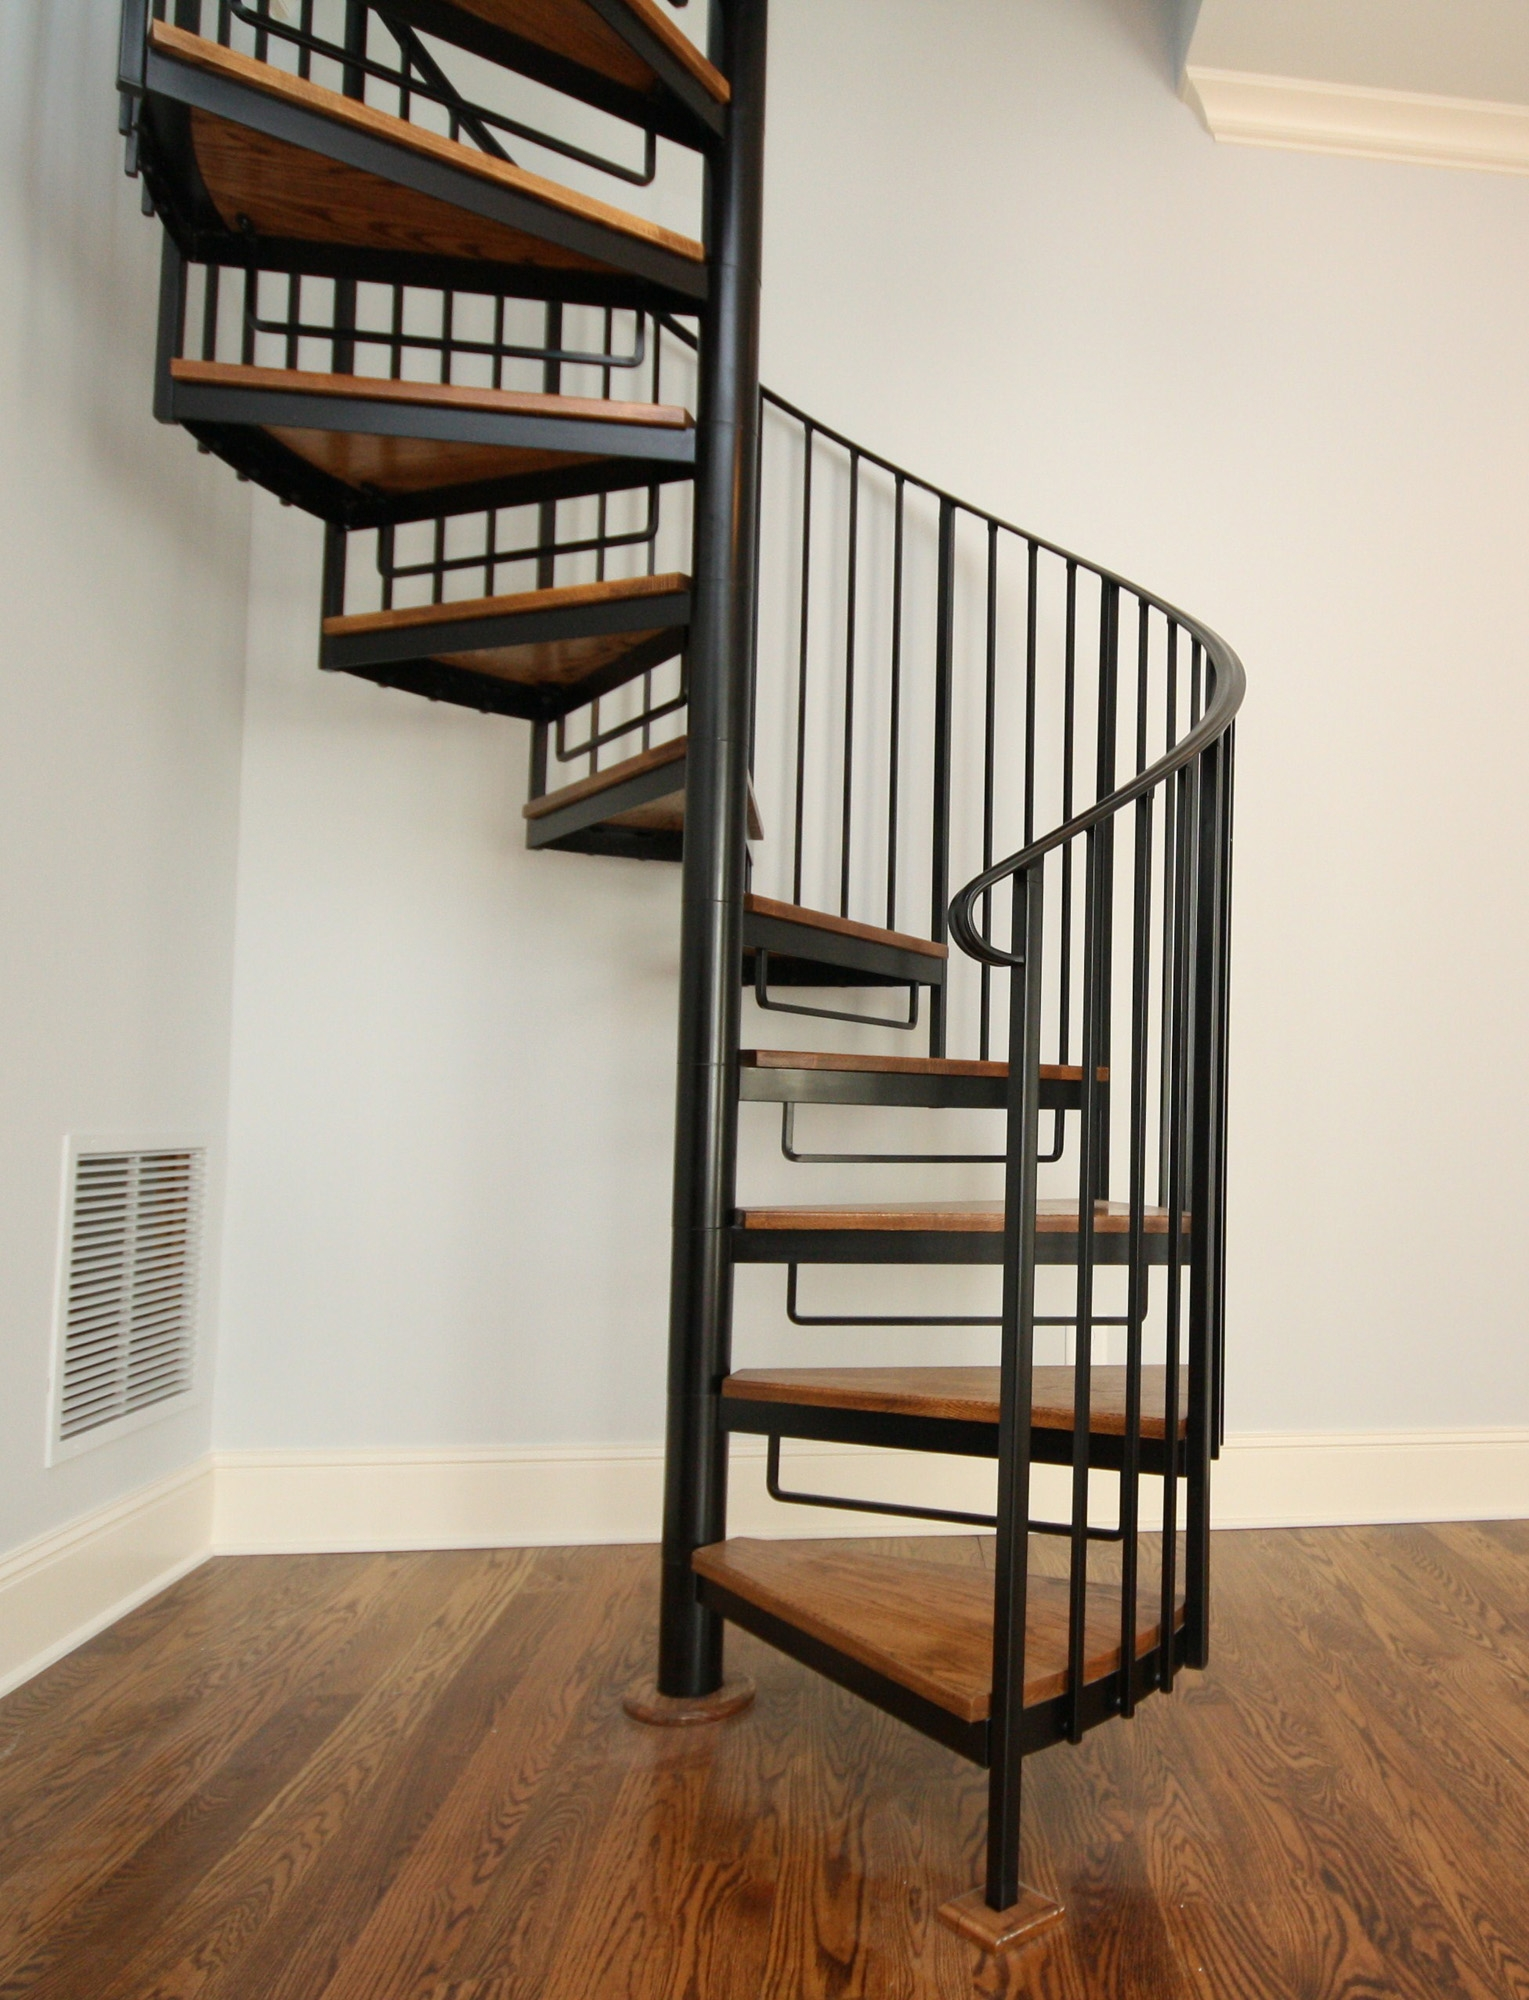 Spiral Stairs Portfolio Image Design Stairs   Circular Stairs For Sale   Rustic   Ornate   Interior   Shop   Slide